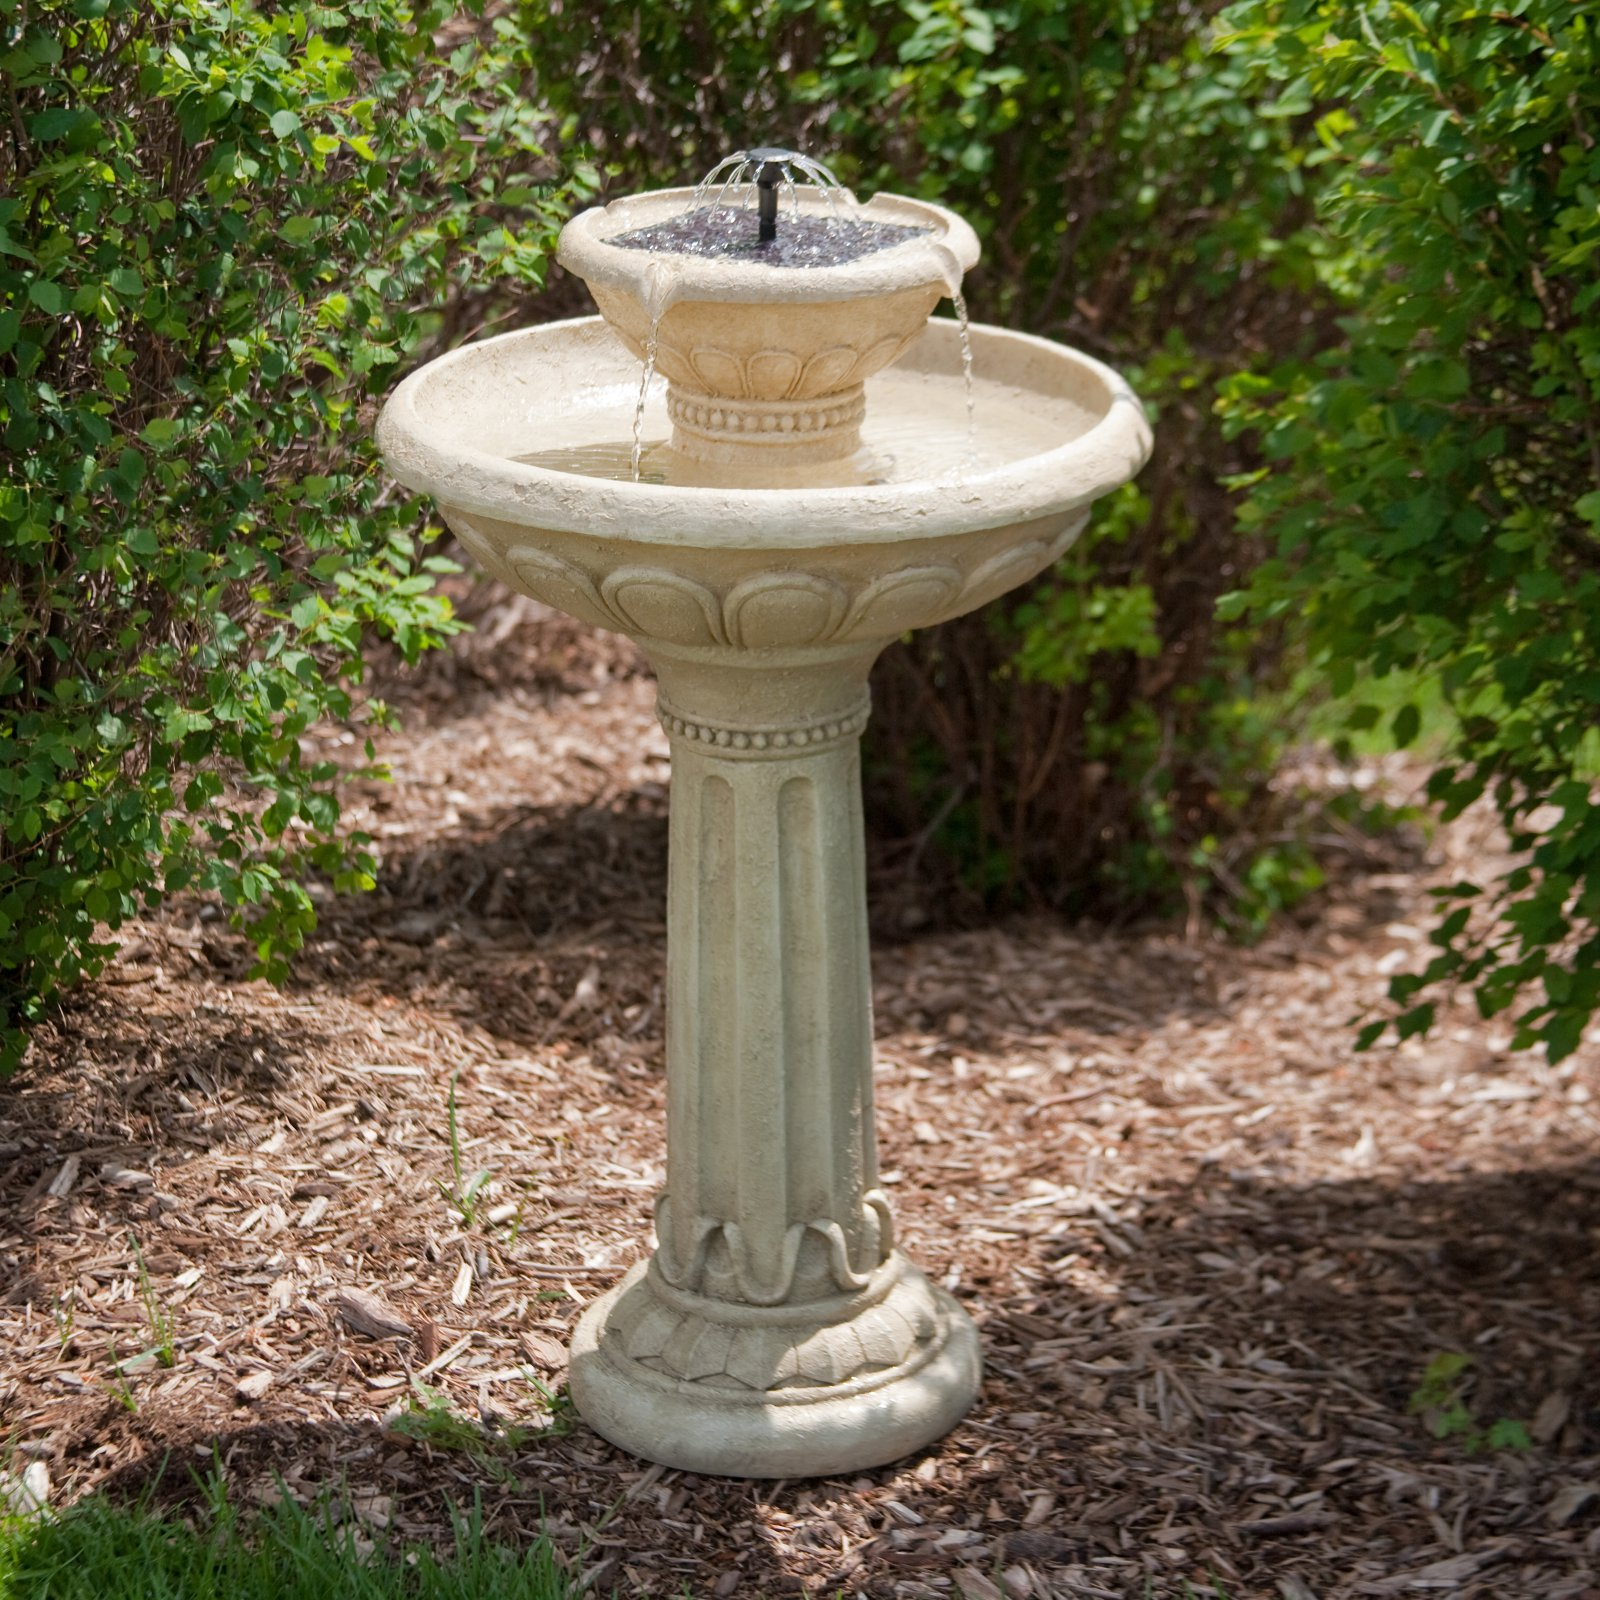 Smart Solar Kensington Gardens 2-Tier Solar Birdbath Fountain by